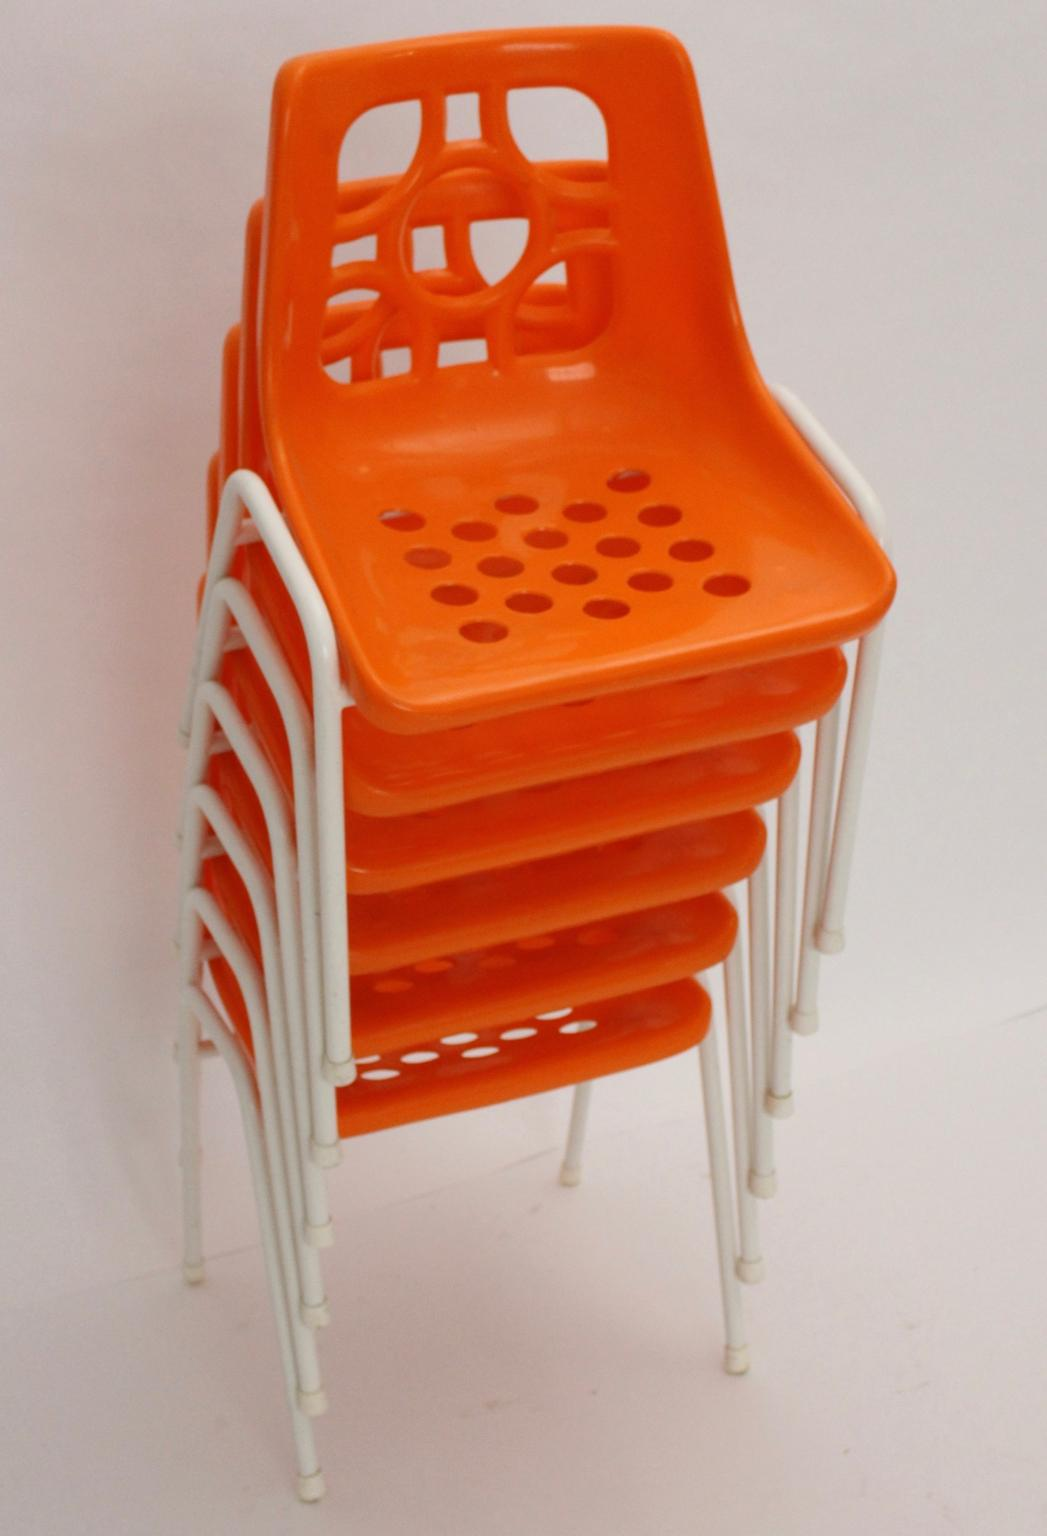 orange stackable chairs wooden eddie bauer high chair plastic stacking 1960s from nobarock on rubylux